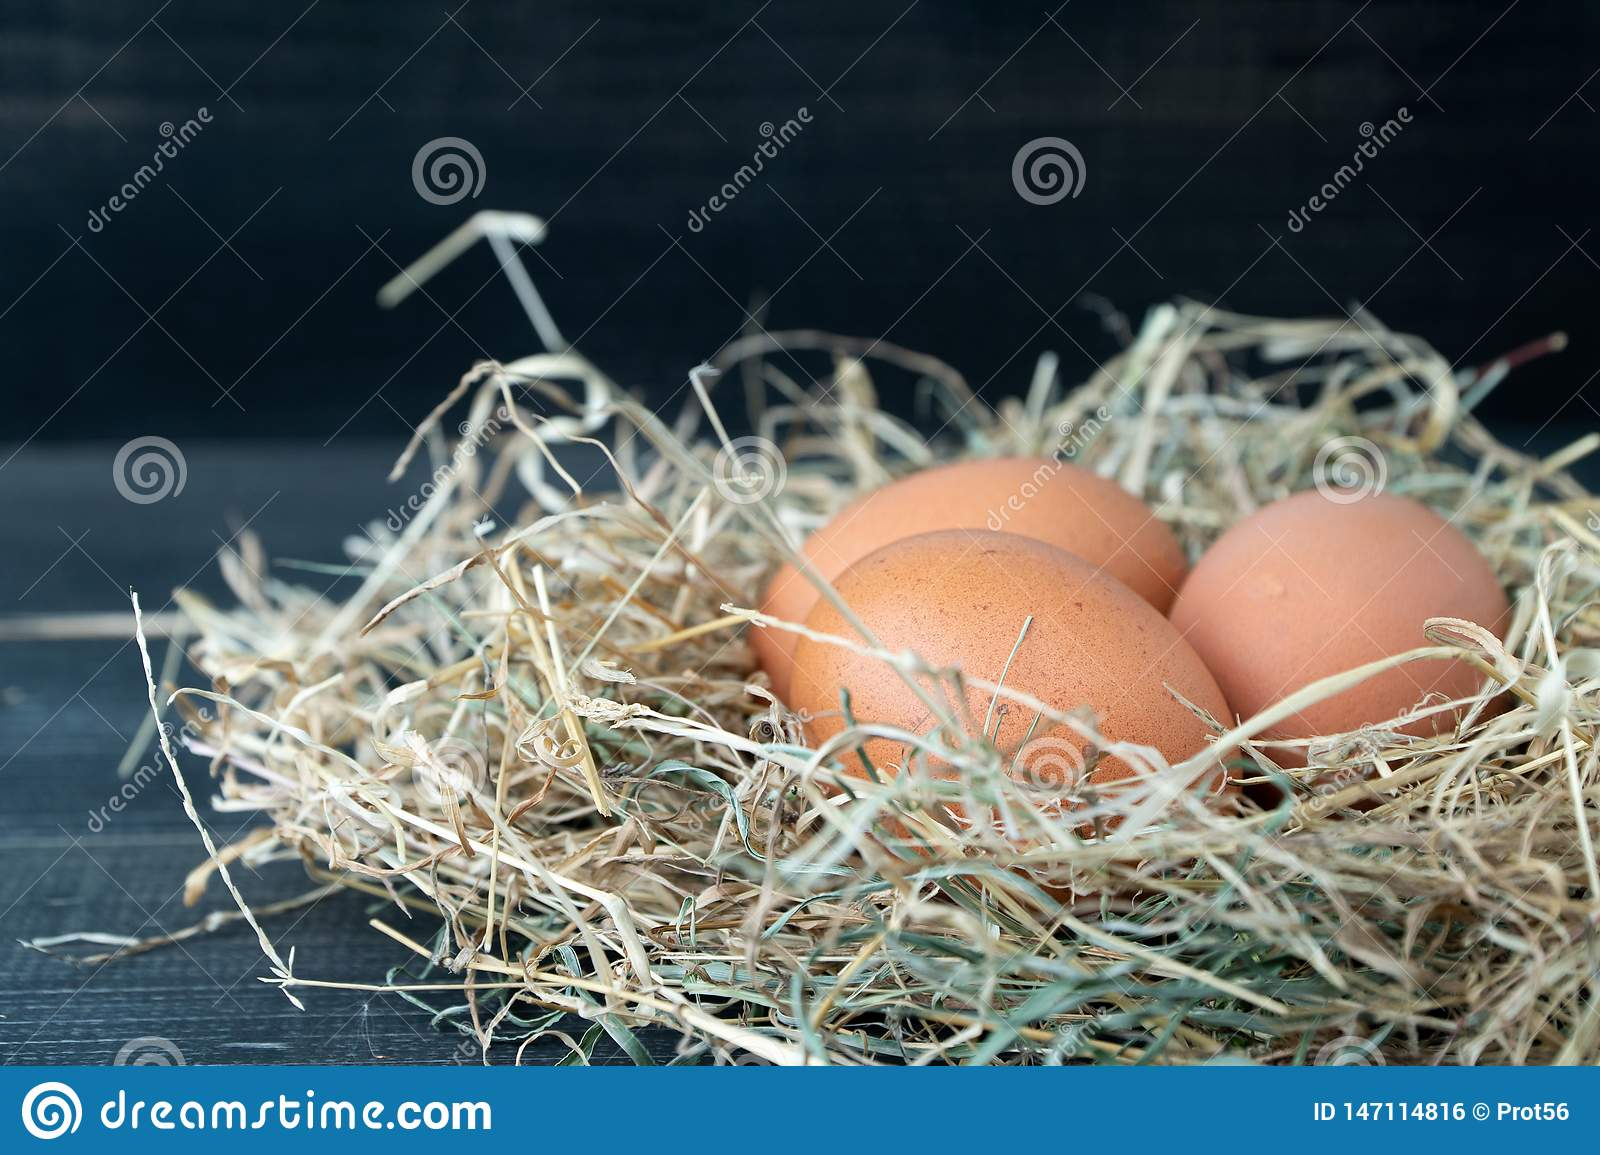 Close up of fresh brown chicken eggs in hay nest on black wooden background. Concept of organic eggs, free space for text or other